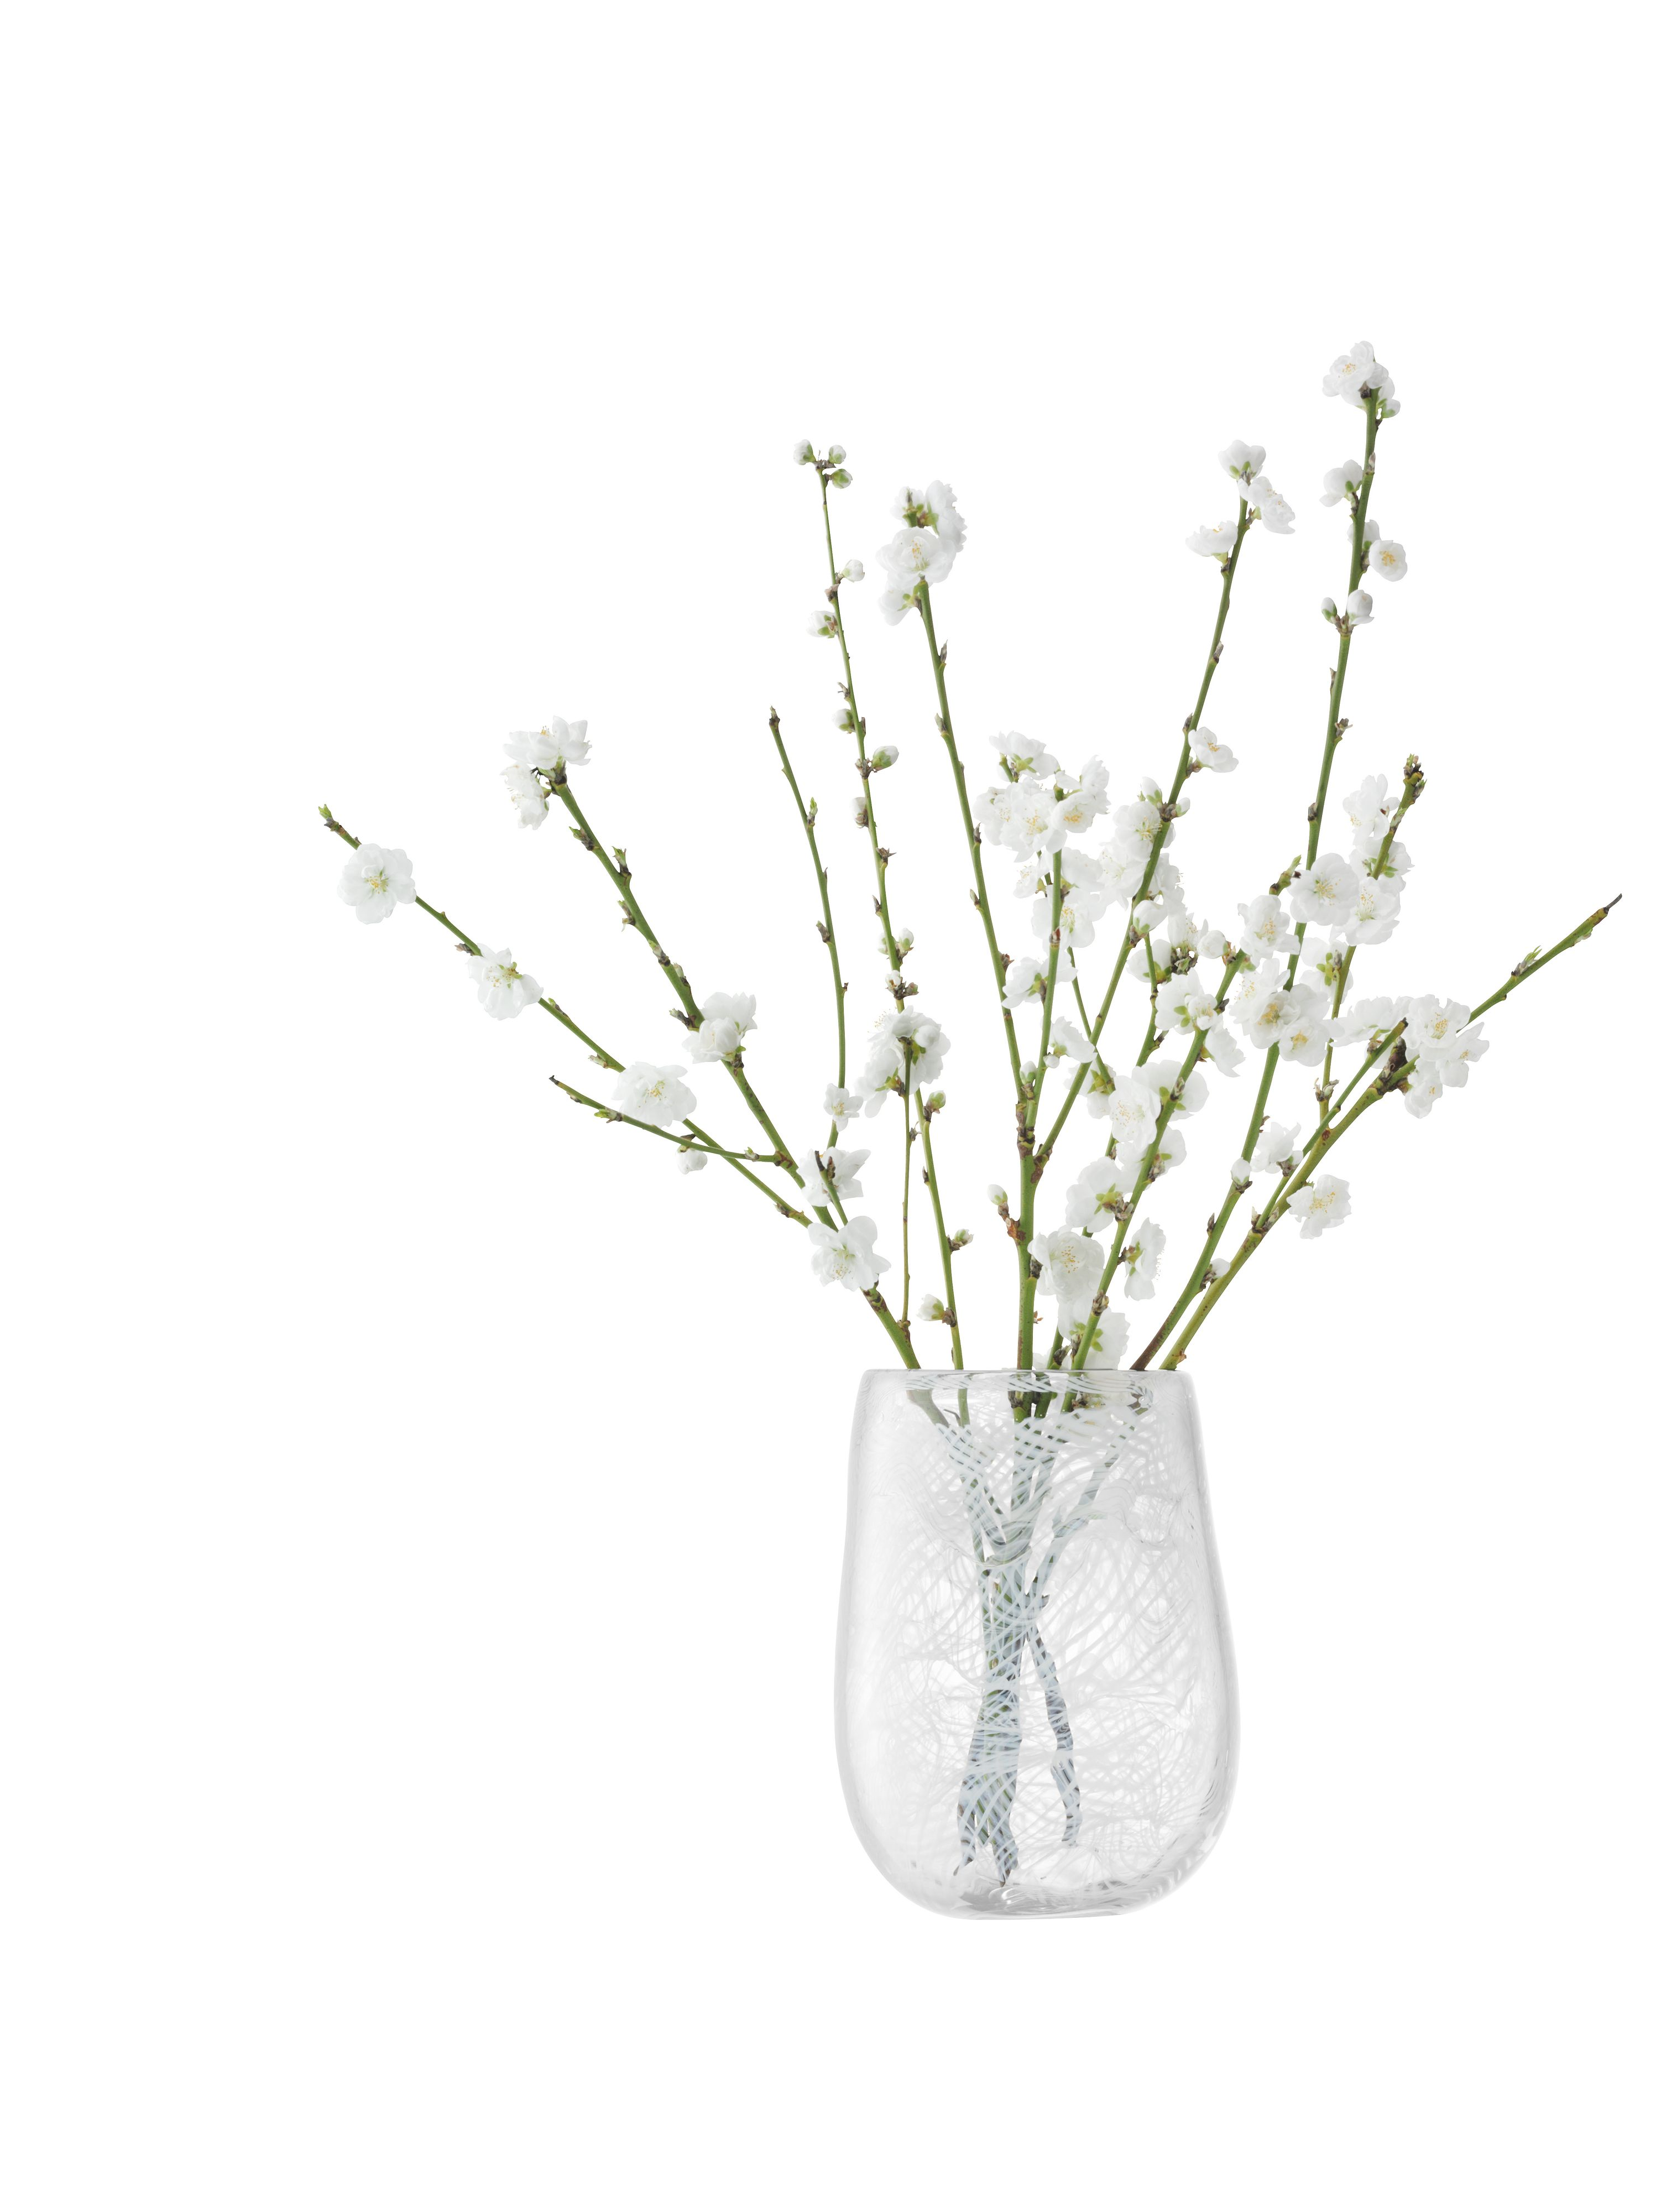 Cotton vase height 23cm in white